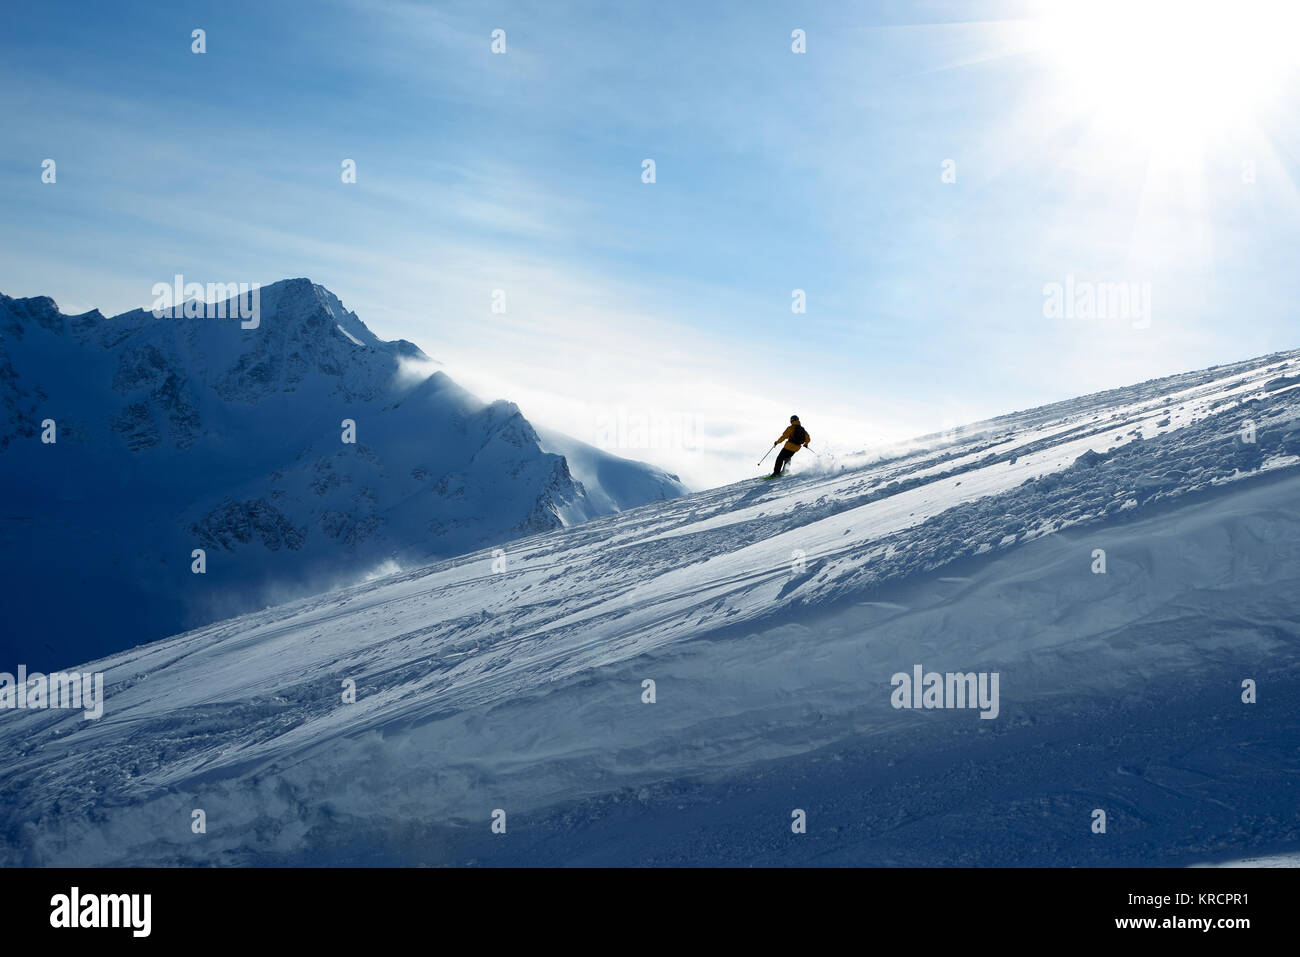 Skier going down the slope on a background of blue sky and mountains - Stock Image